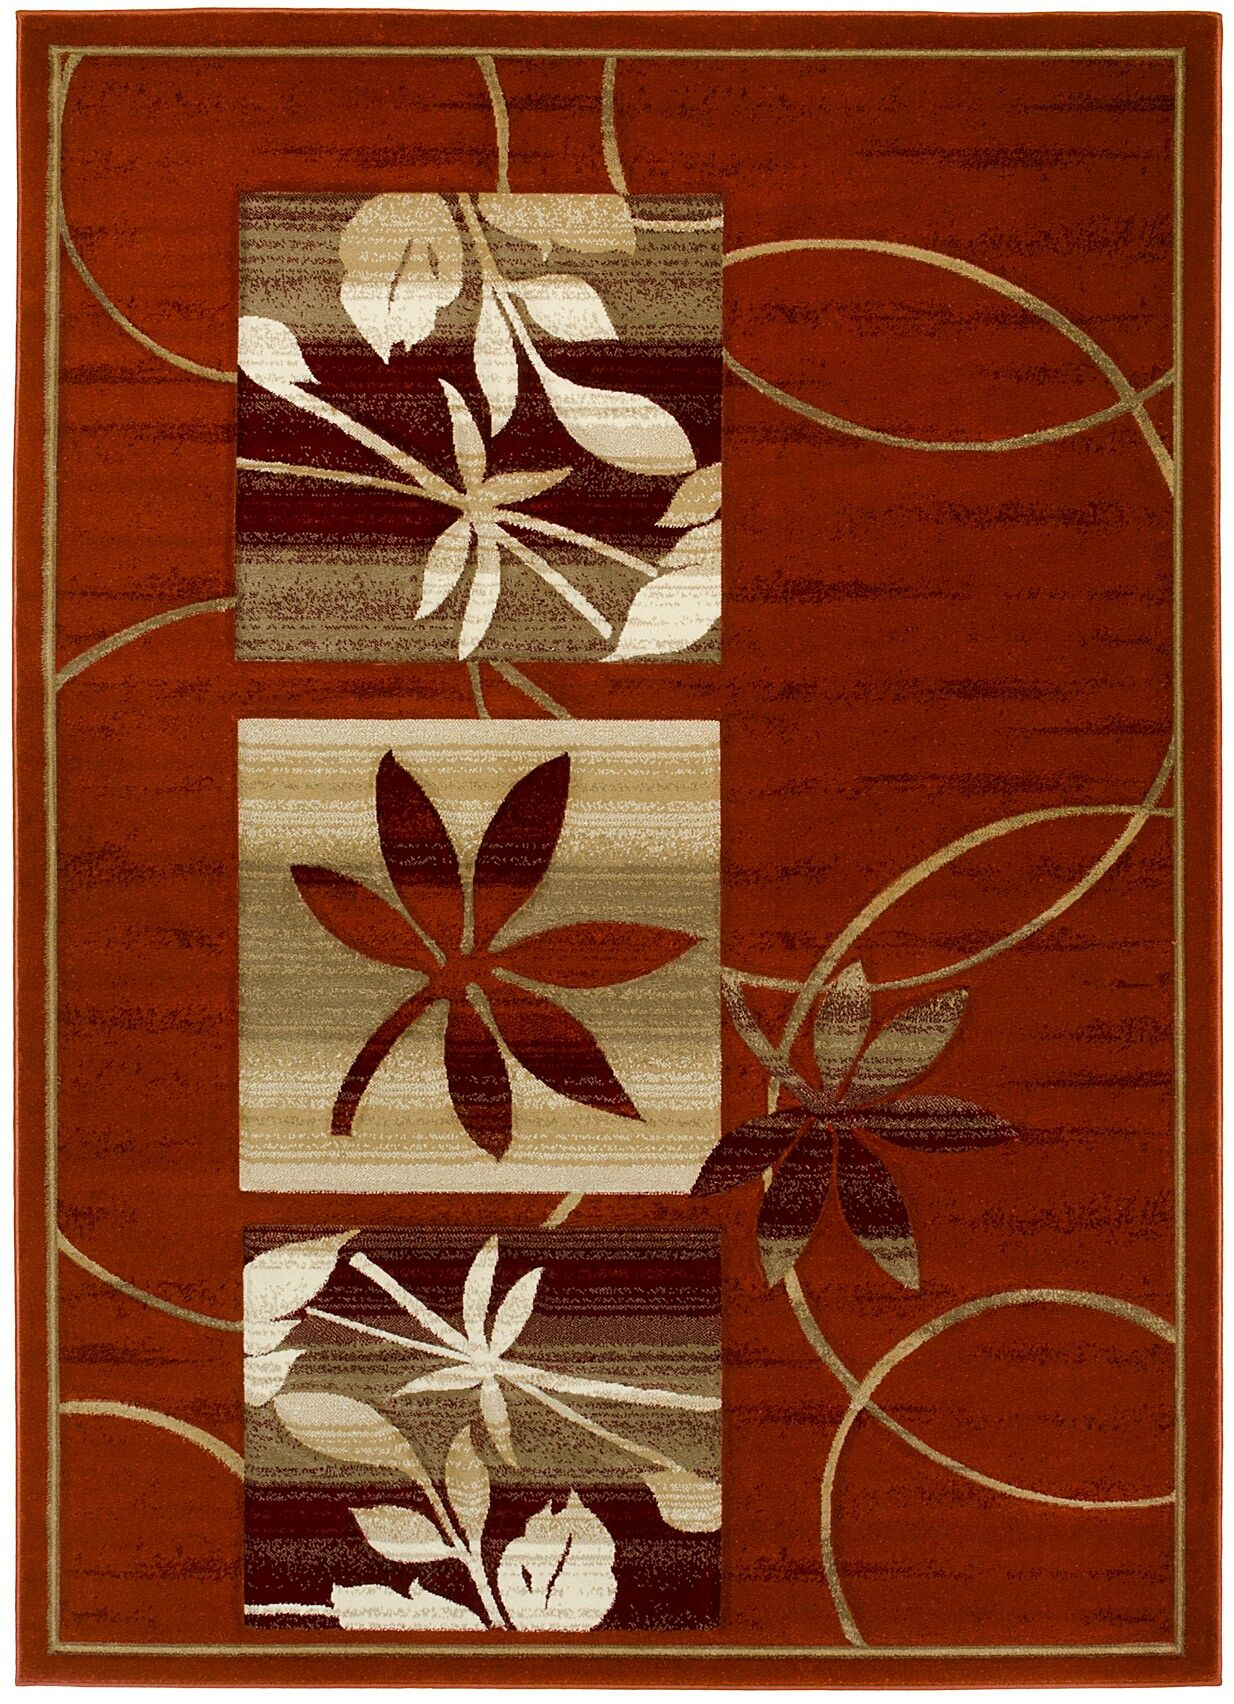 Abagail Hand-Carved Rusted/Beige Area Rug